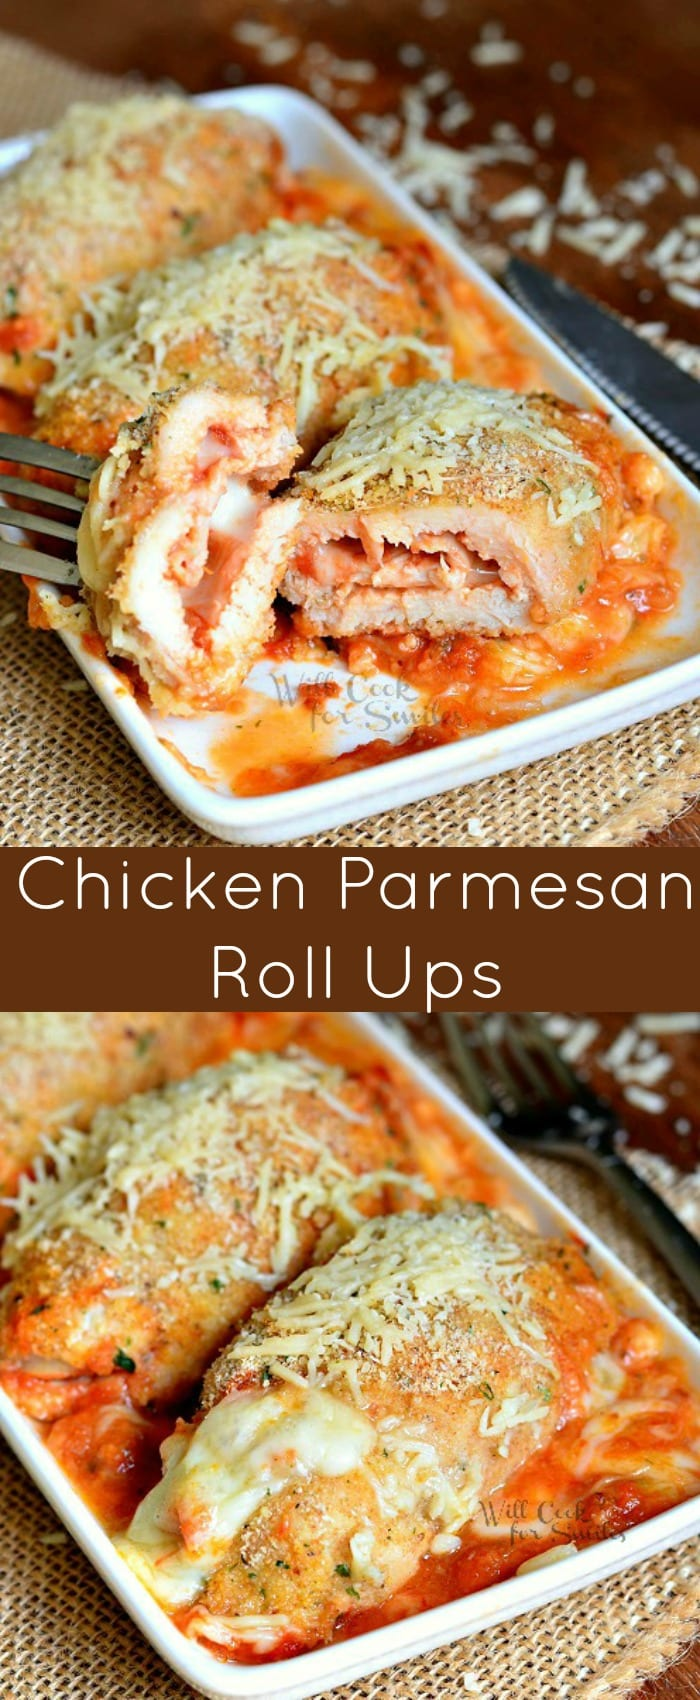 Chicken Parmesan Roll Ups Recipe (and demo video). This is an amazing chicken dinner idea that is fun for kids and adults! Delicious Chicken Parmesan made into a roll up makes a flavorful, juicy and tender chicken dish. #chicken #chickenparmesan #chickenparm #easydinner #rollups